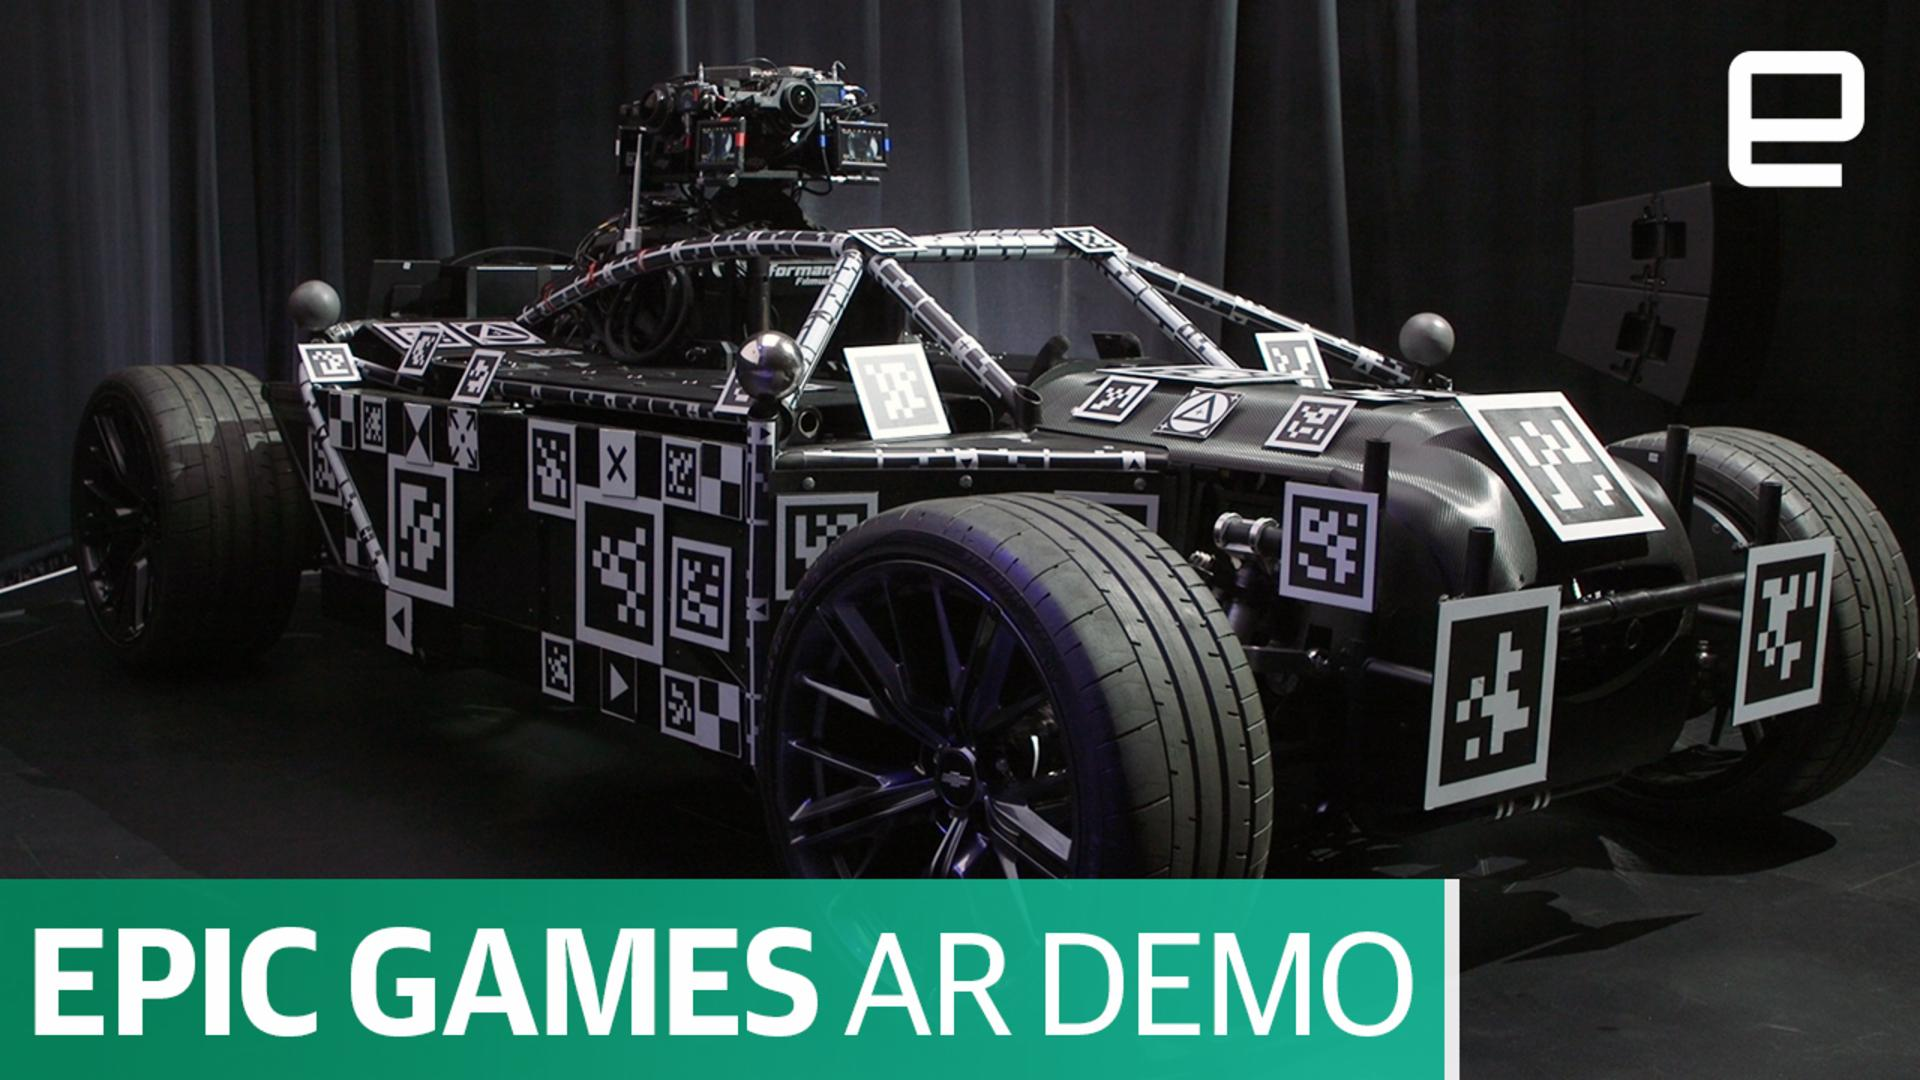 Epic Games shows the potential of high-end augmented reality